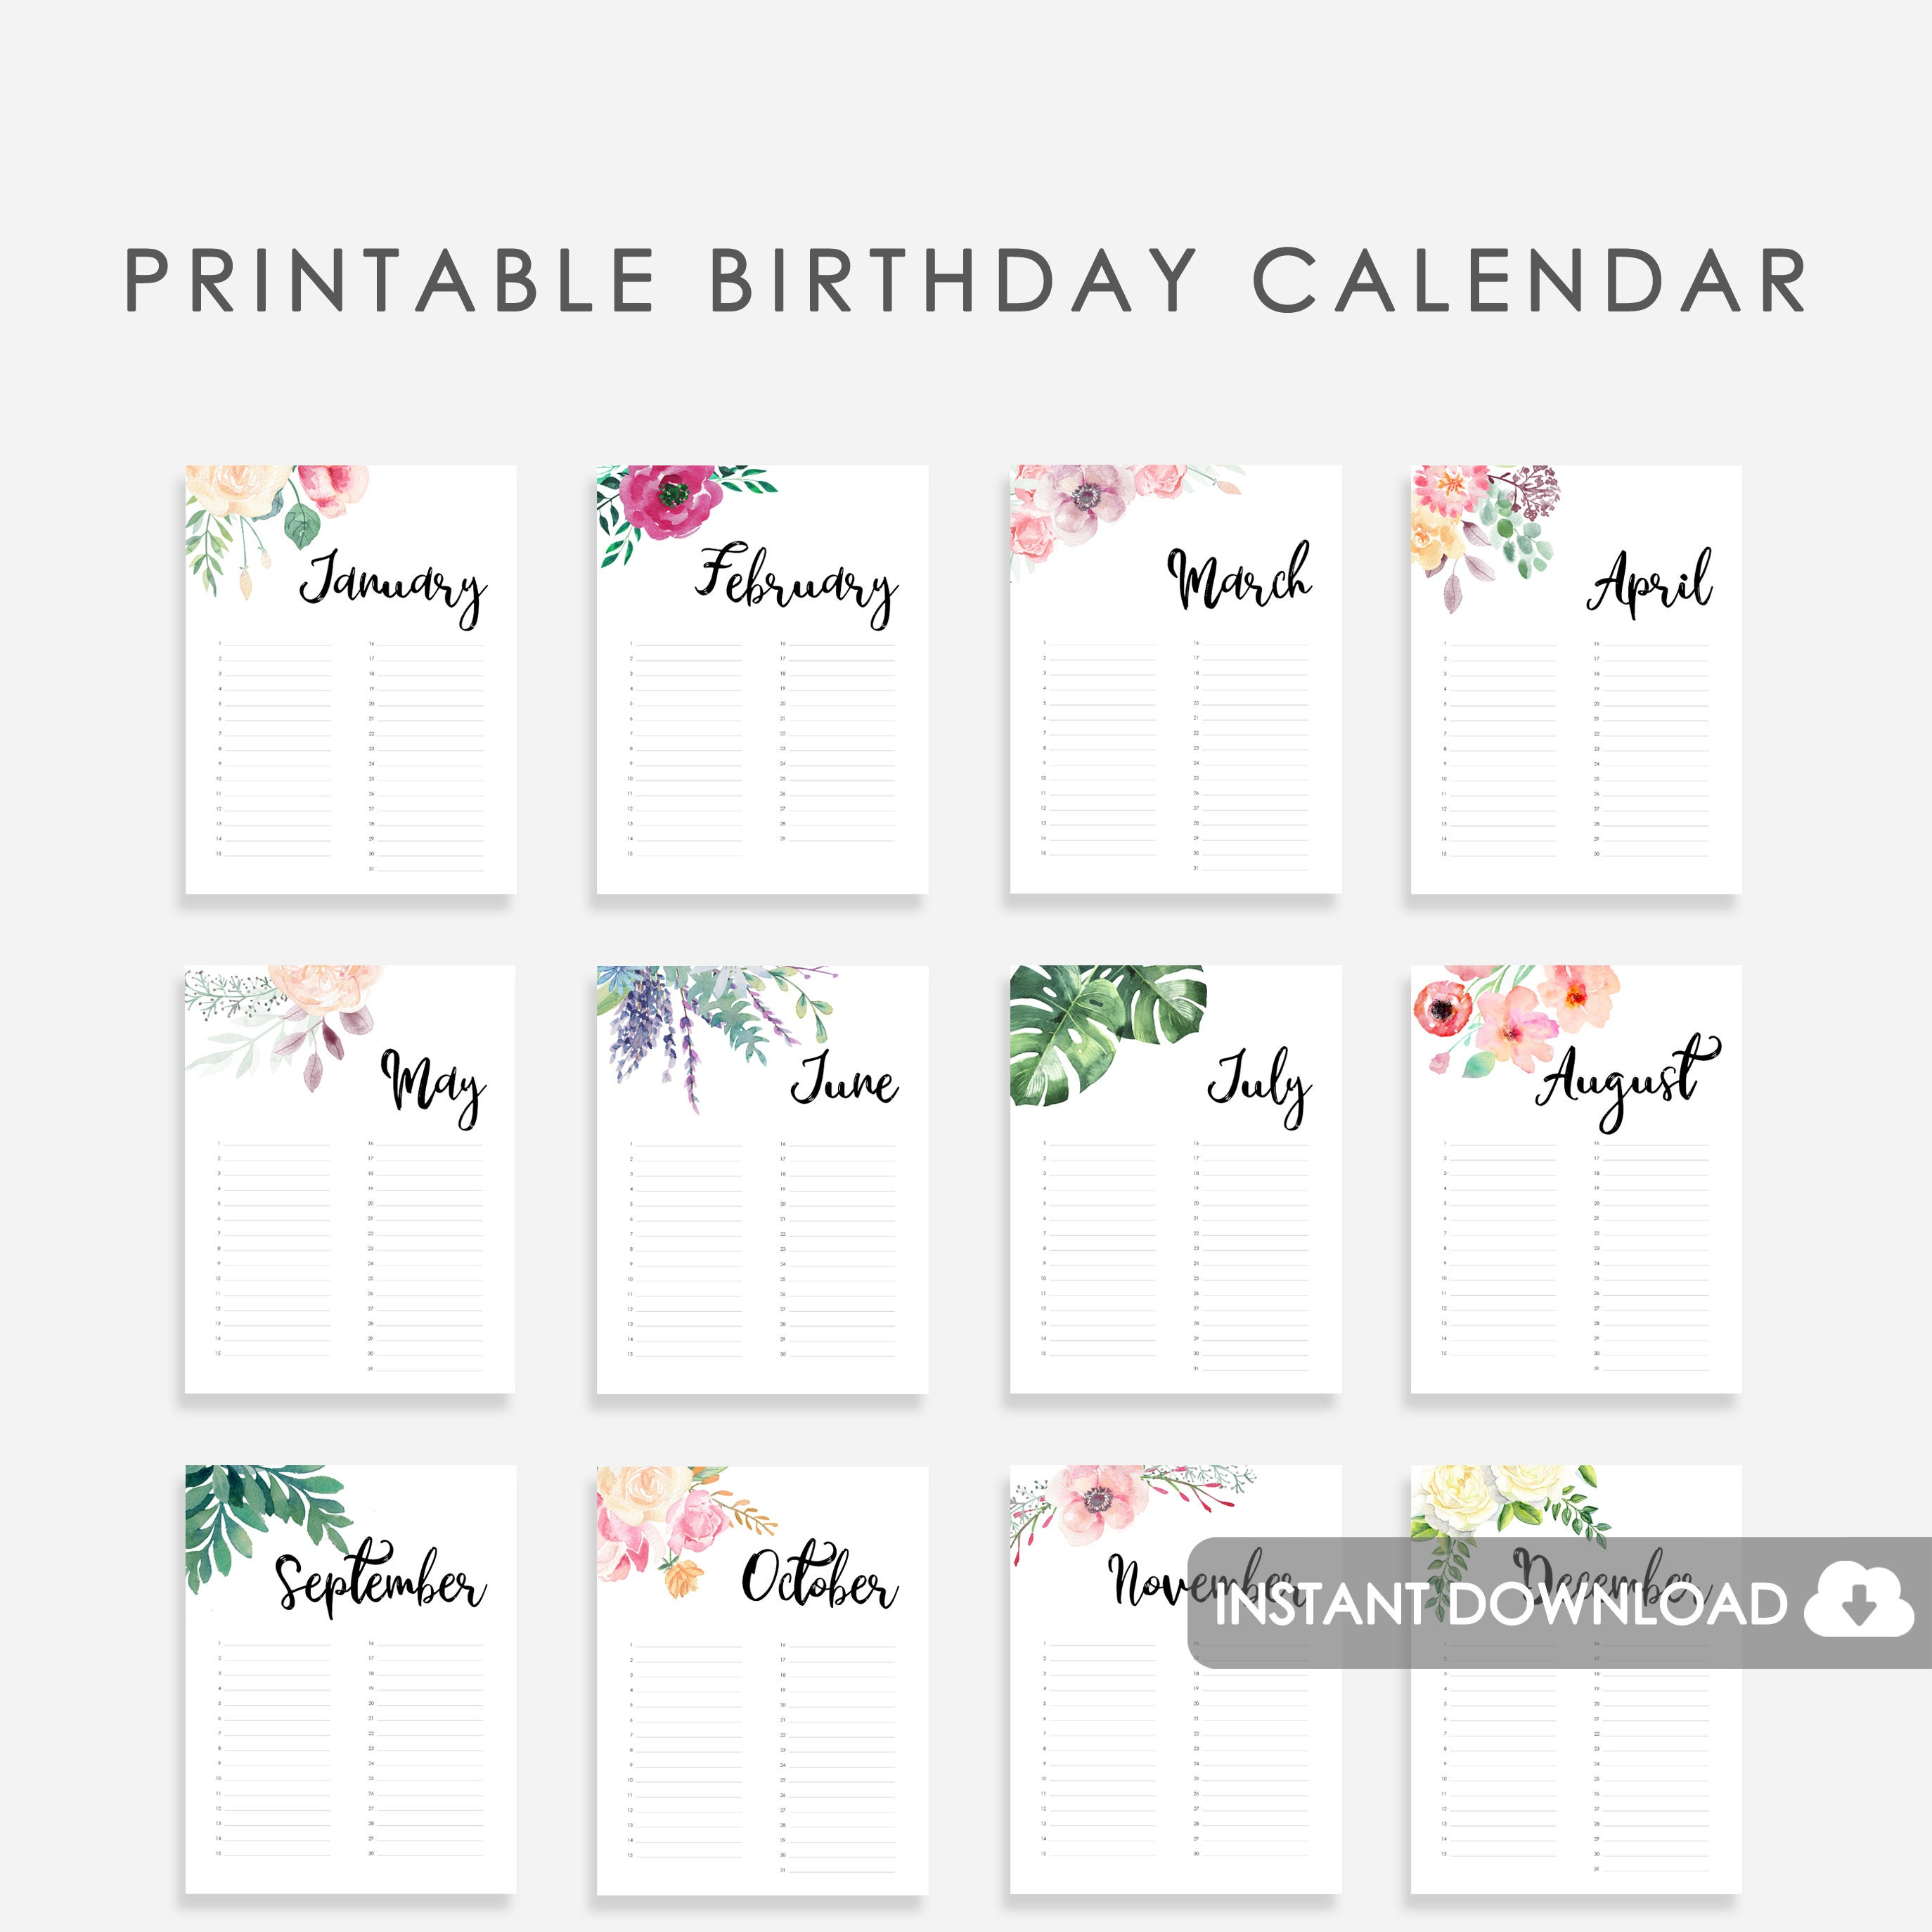 photo about Printable Birthday Calendar identified as Marriage Visitor E book Birthday Calendar Printable, Wedding ceremony Visitor Guide Printable Birthday Calendar, Perpetual Calendar for Birthdays, Watercolor